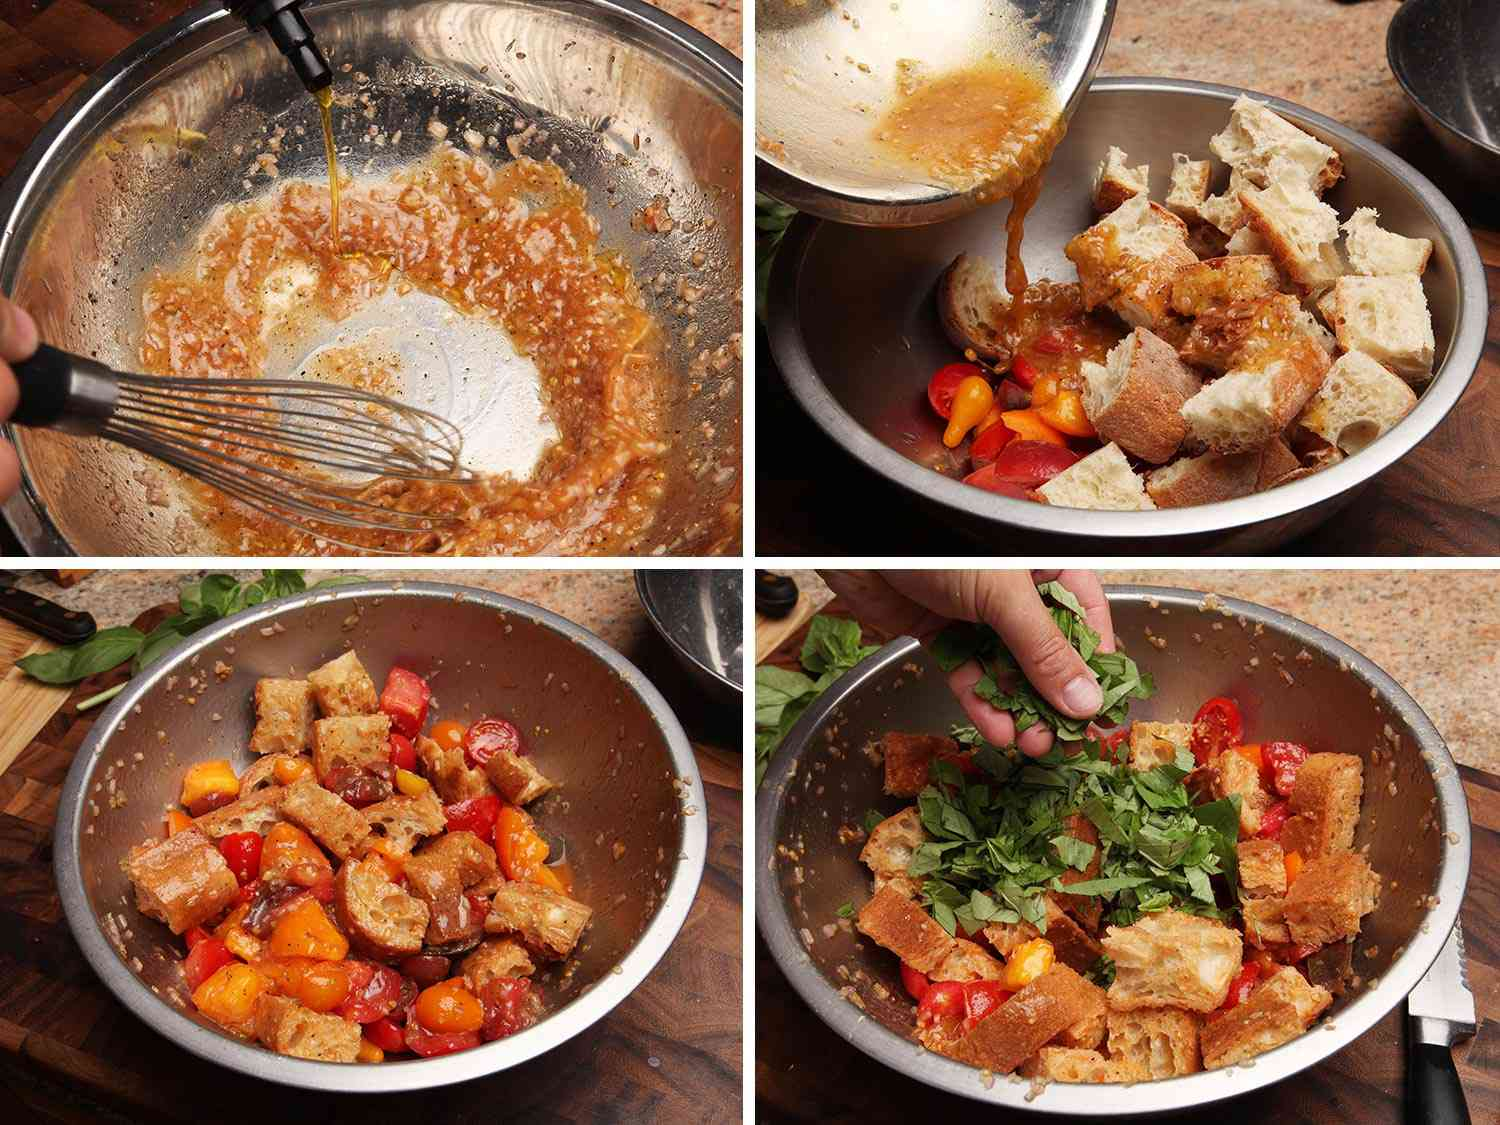 Collage of photos of making panzanella salad: whisking olive oil and tomato juice in a large bowl to make a vinaigrette, pouring vinaigrette over tomatoes and bread, tomatoes and bread soaked in vinaigrette, adding chopped basil leaves to salad